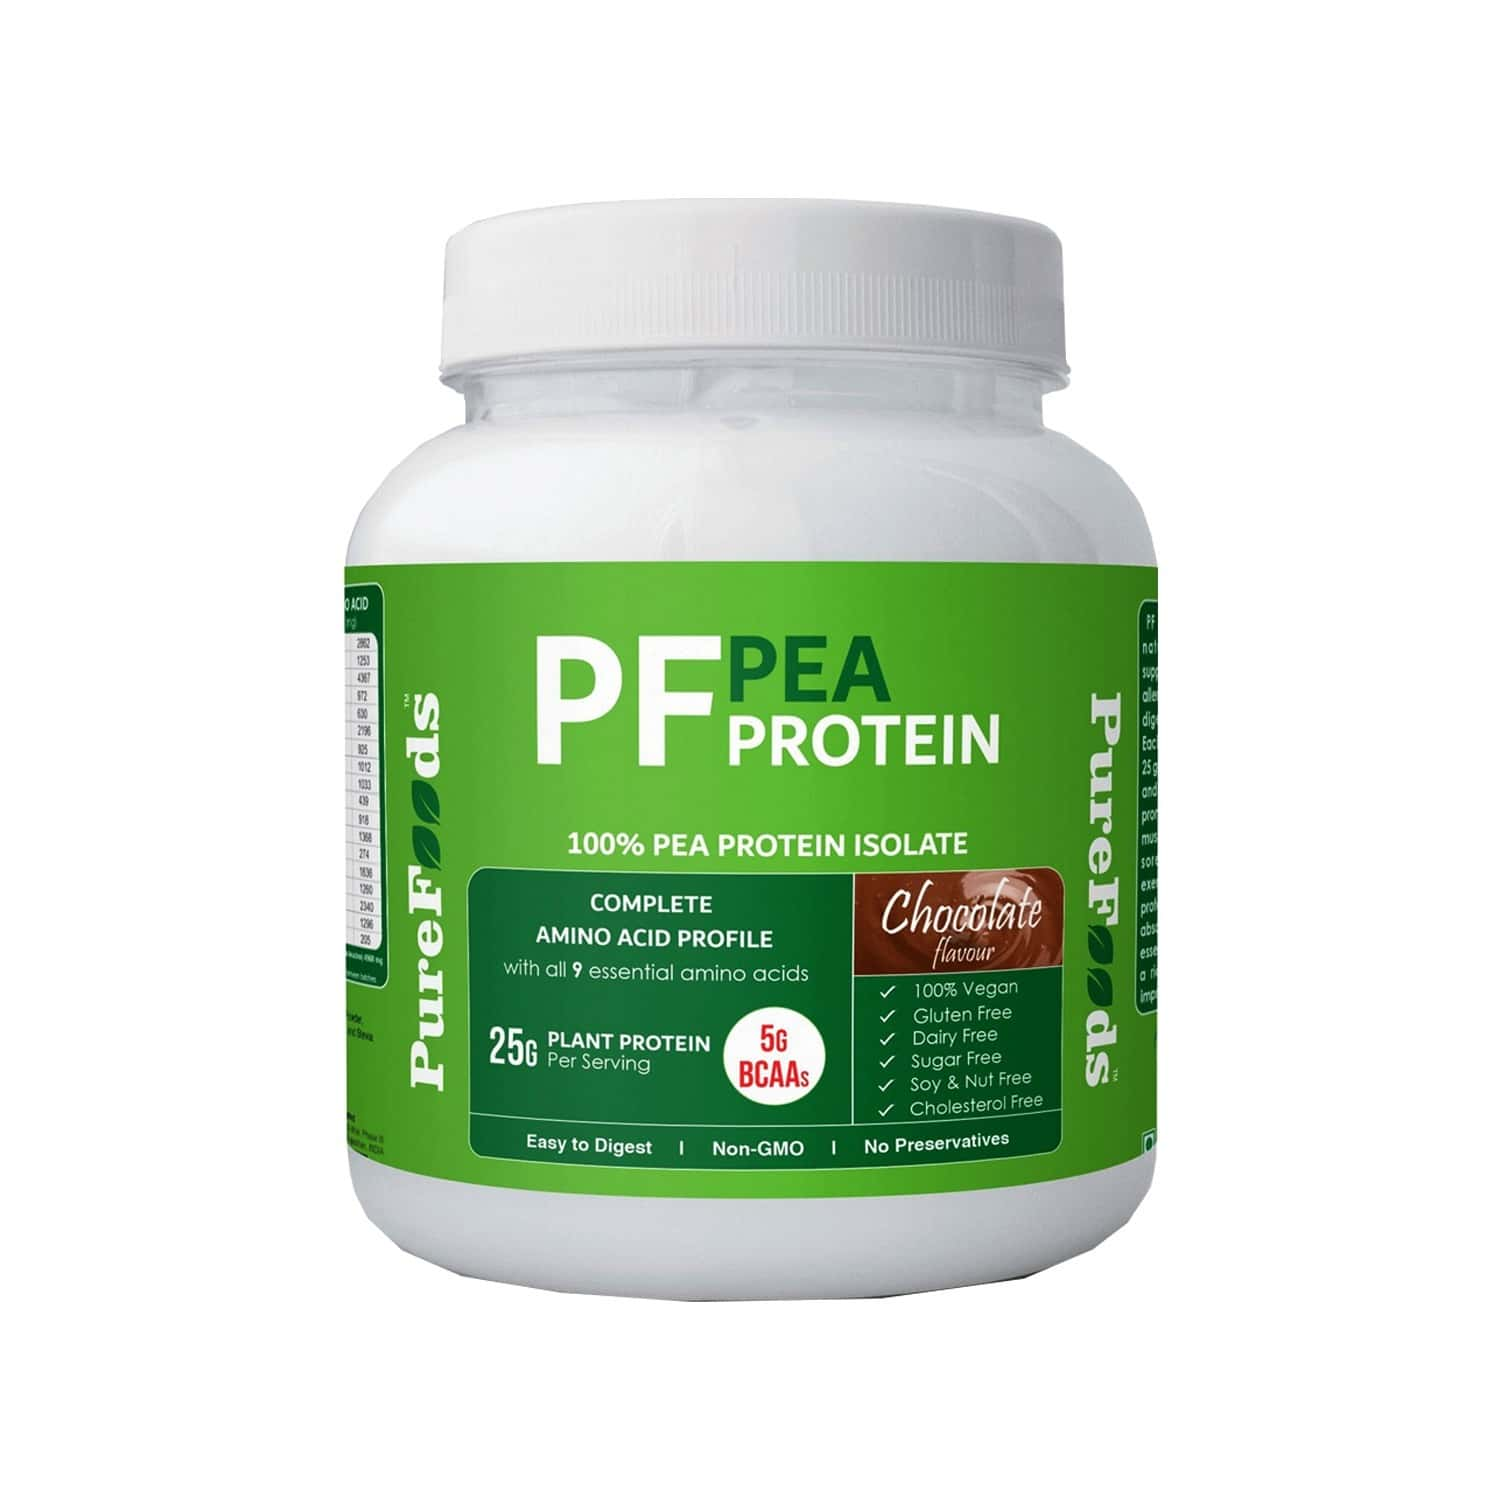 Purefoods Pf Pea Protein Chocolate Flavour - 800g